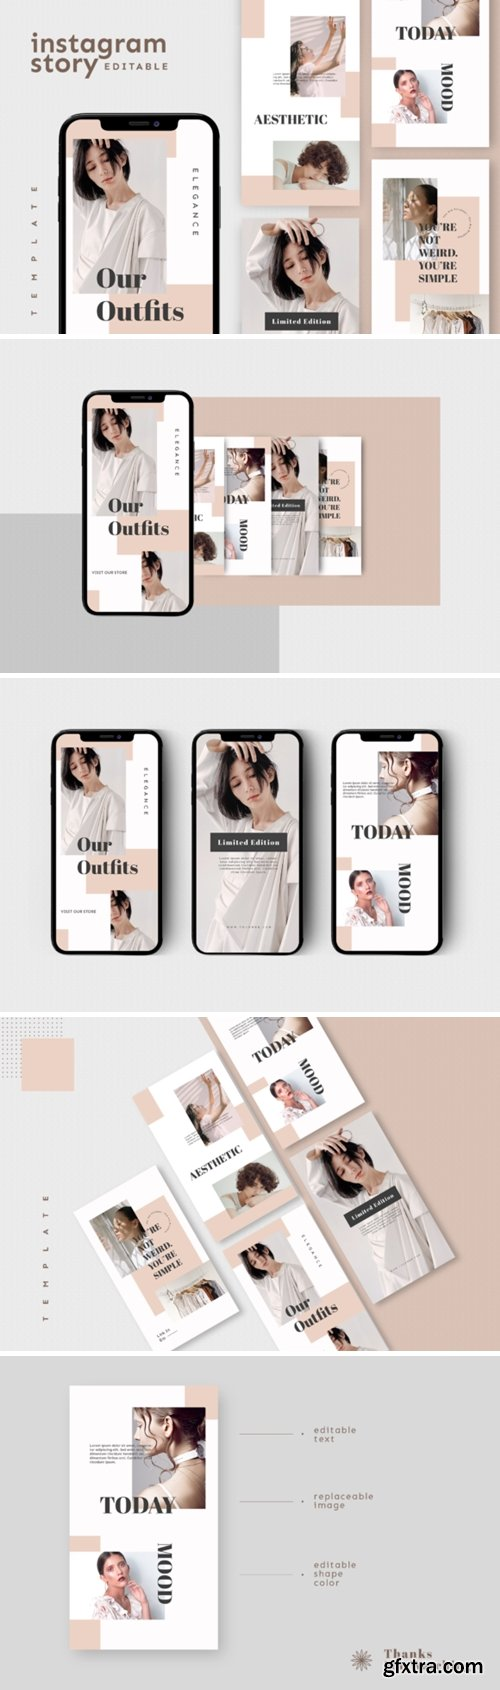 Instagram Story Template 3777602